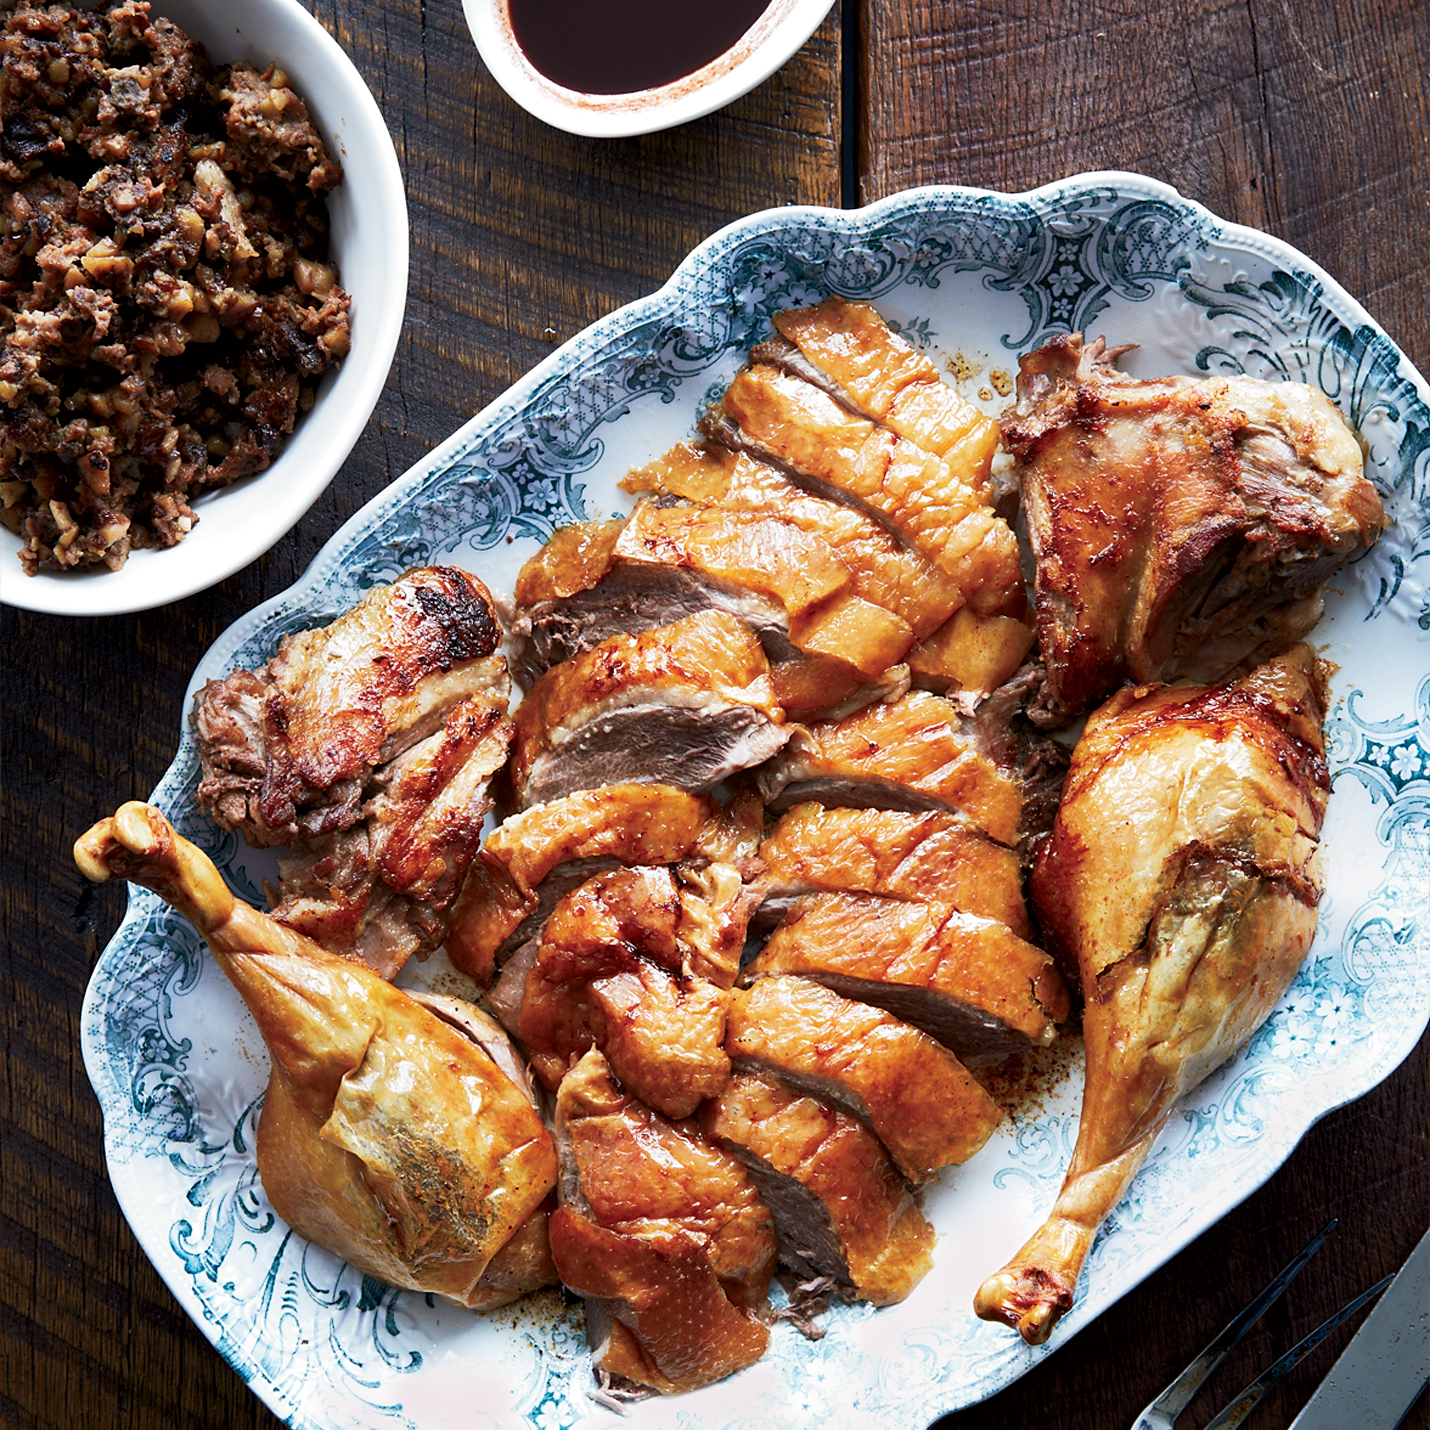 Roast Goose with Pork, Prune and Chestnut Stuffing